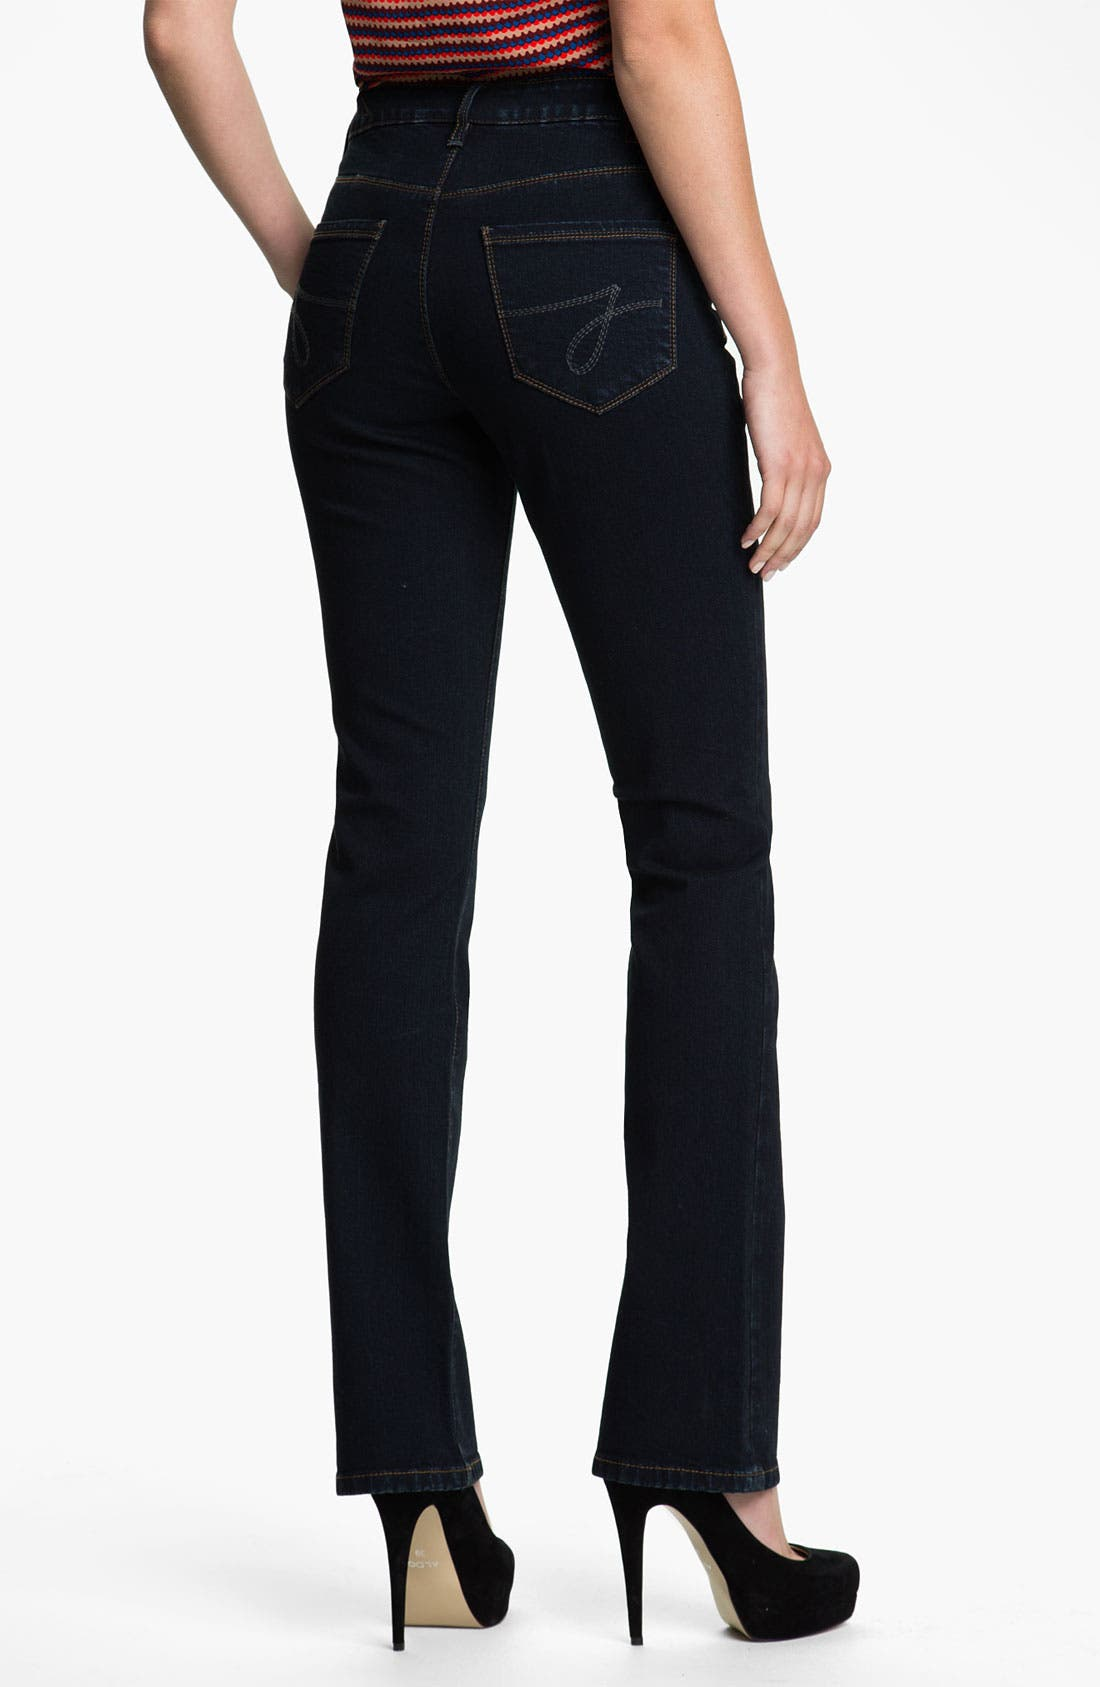 Alternate Image 2  - Jag Jeans 'Foster' Narrow Bootcut Jeans